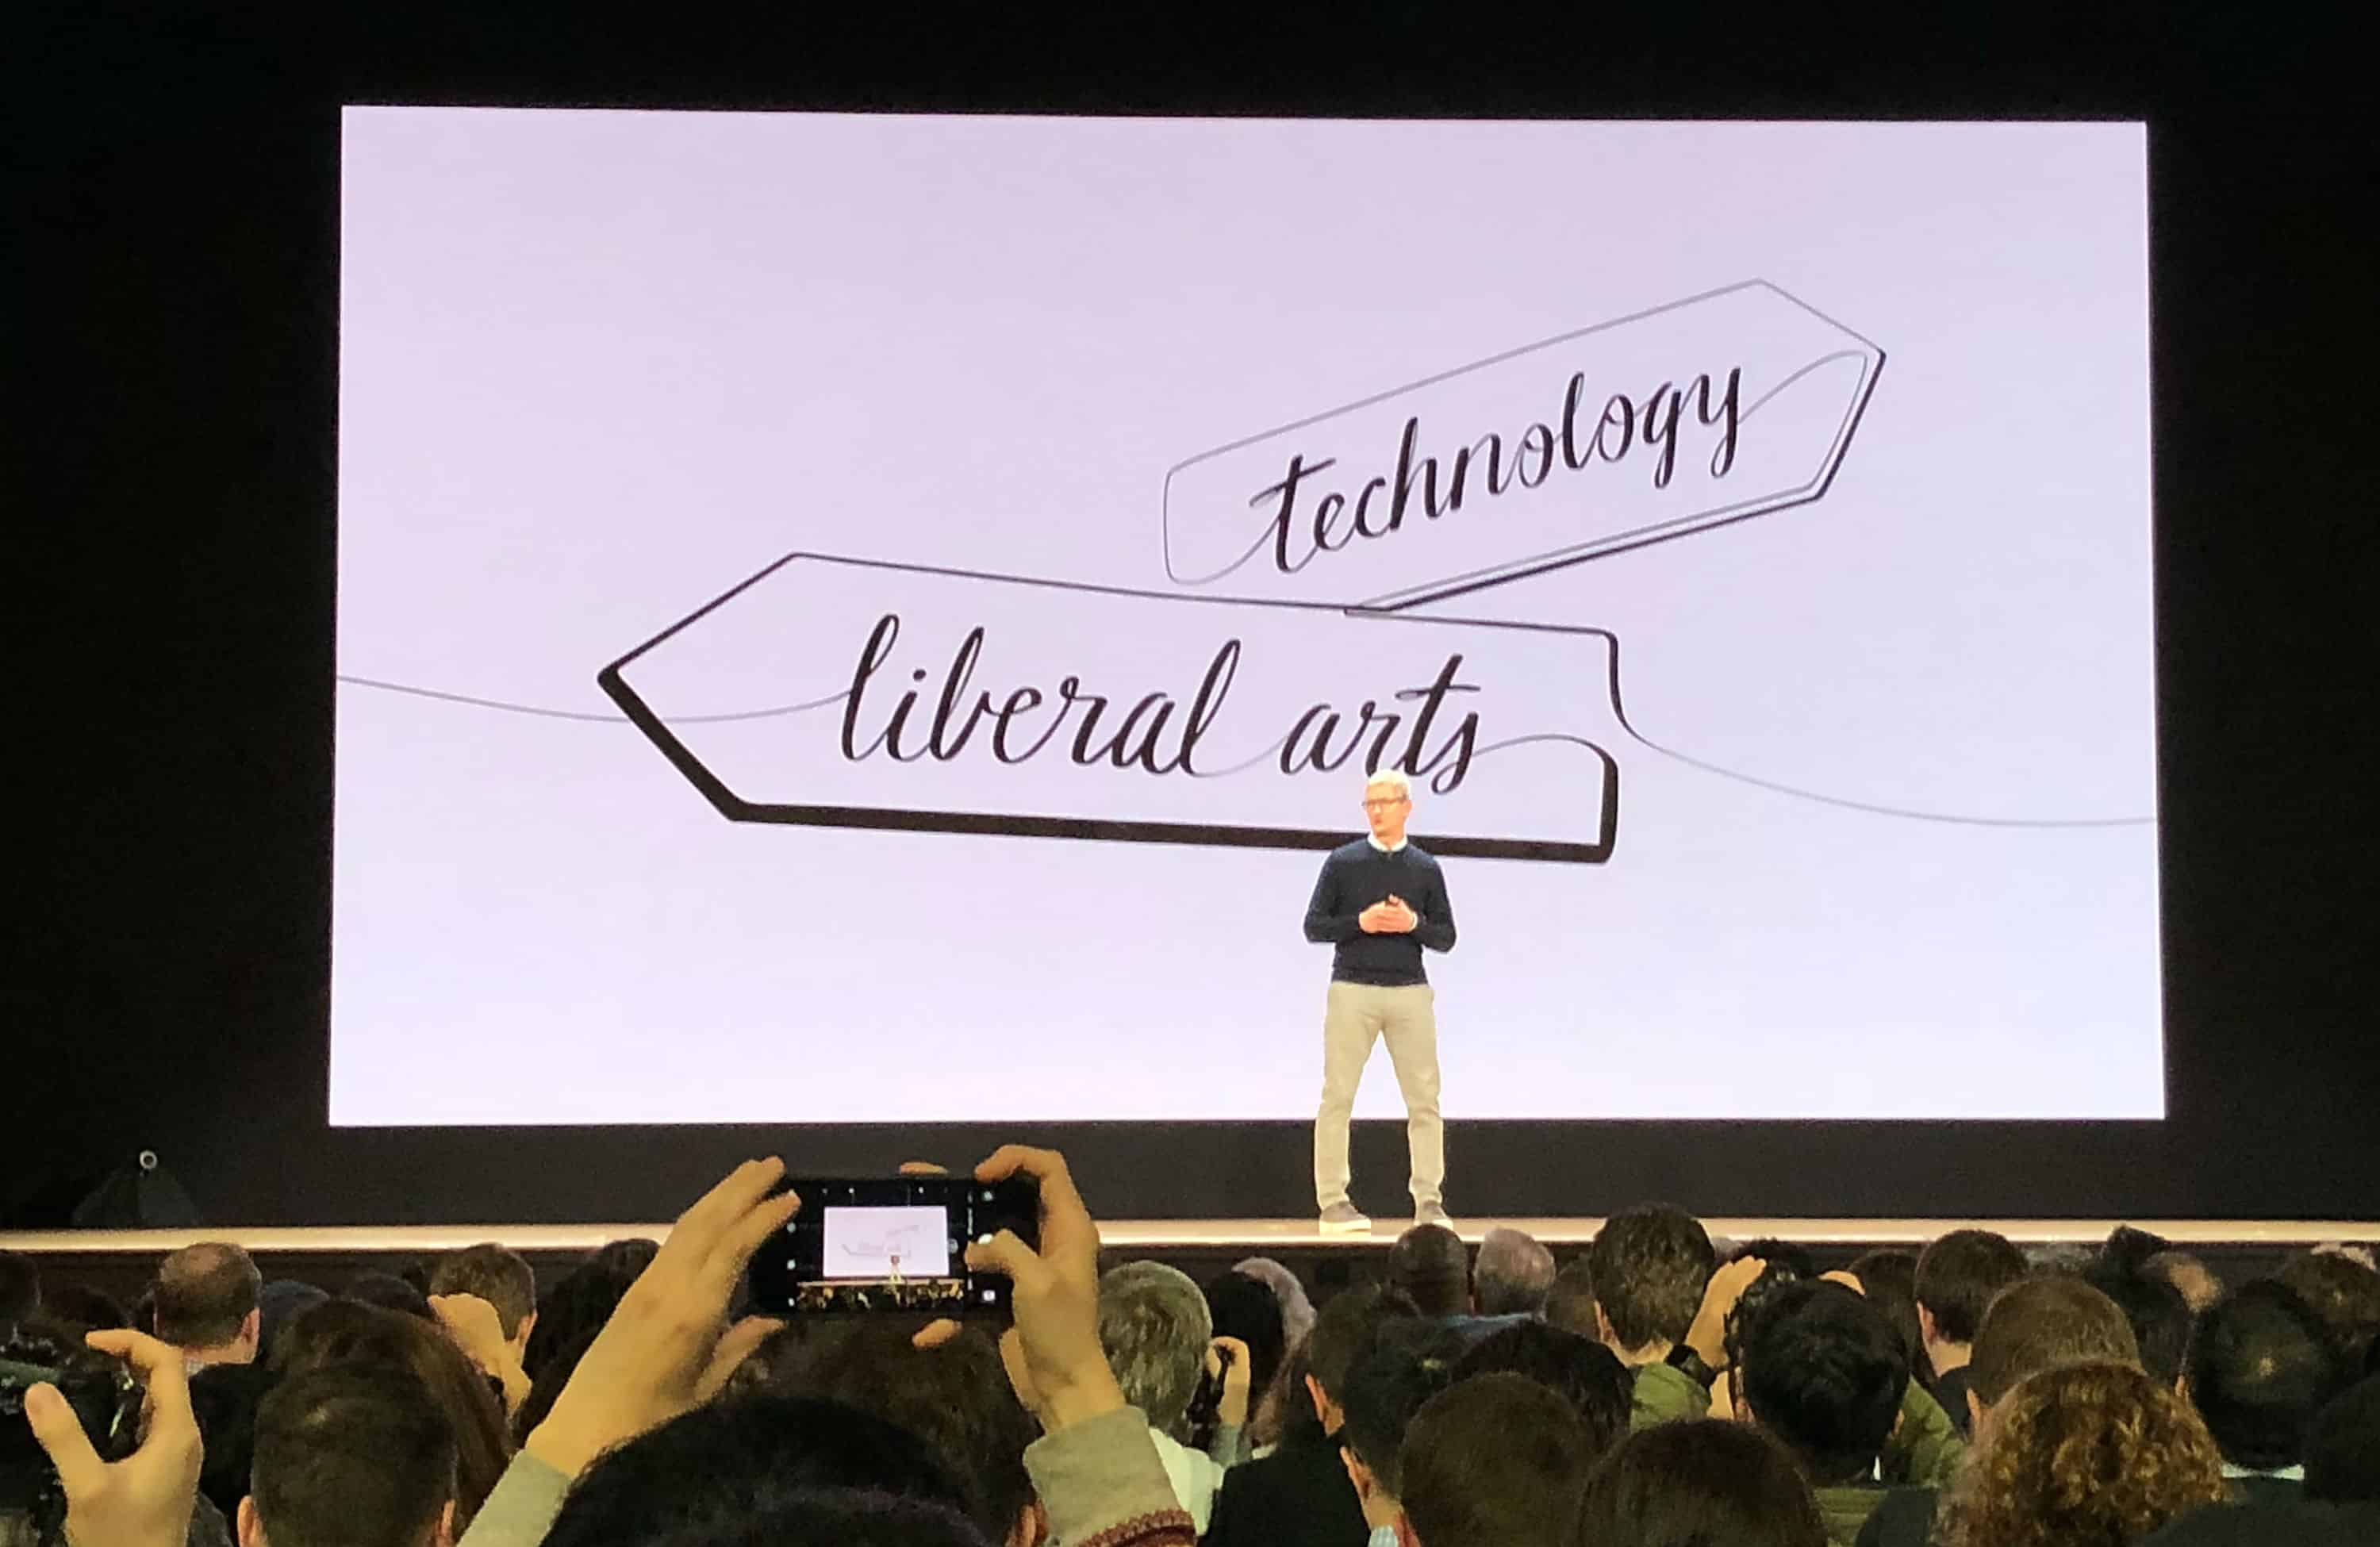 At Apple's education-oriented iPad event on March 27, 2018, Tim Cook positions the company squarely at the intersection of technology and the liberal arts.